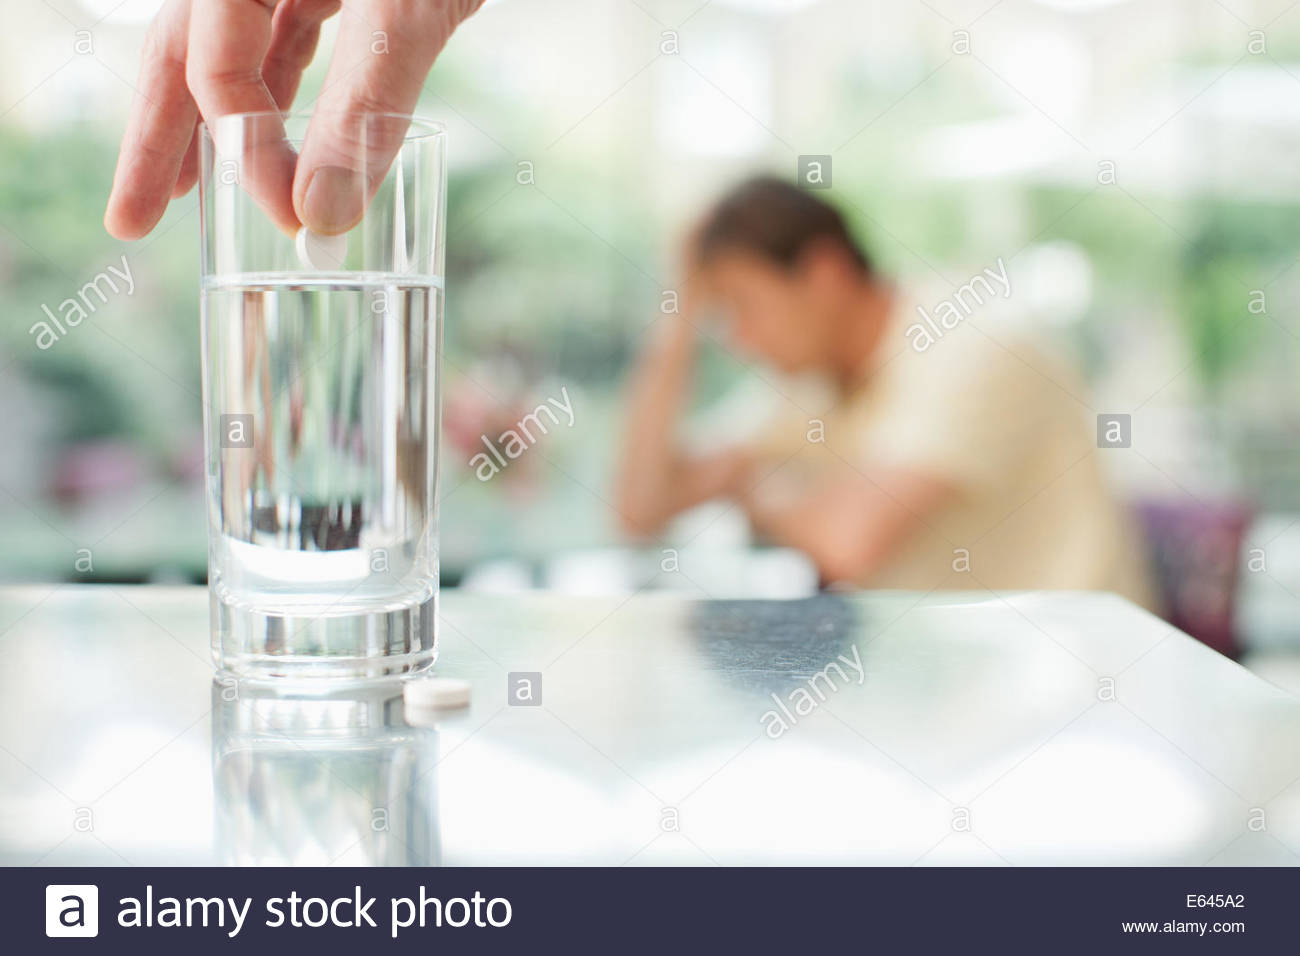 Putting pill in glass of water with unhappy man in background - Stock Image